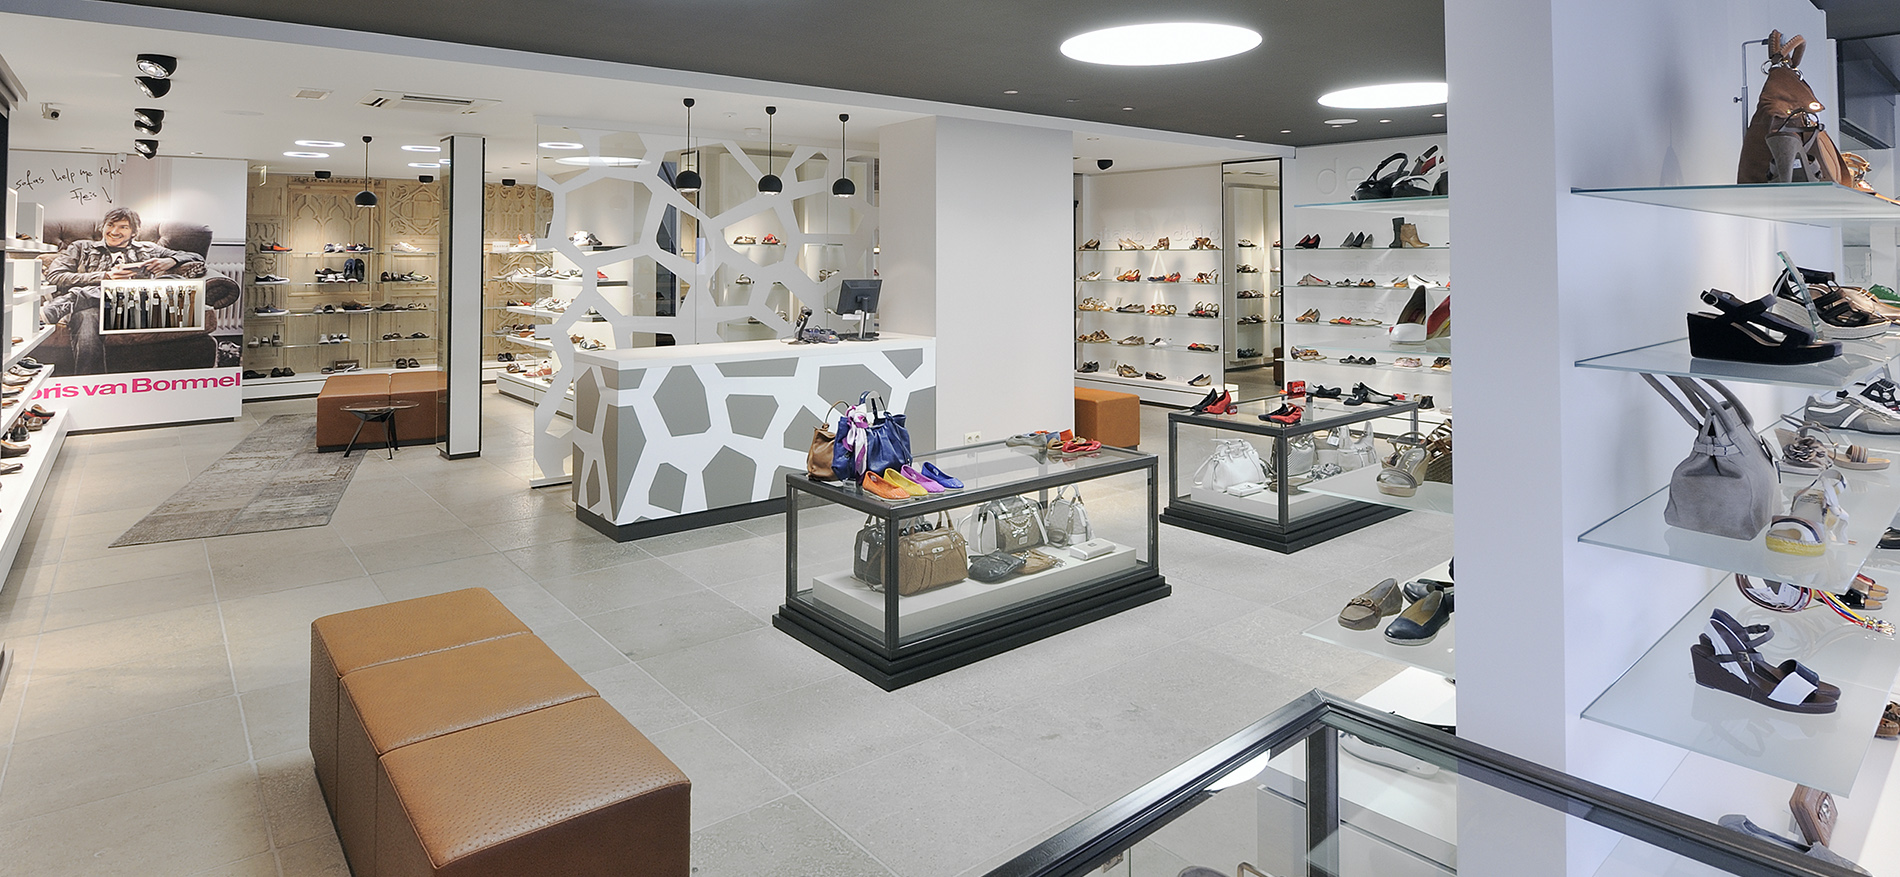 De Splenter Schoenen Wsb For Better Shops